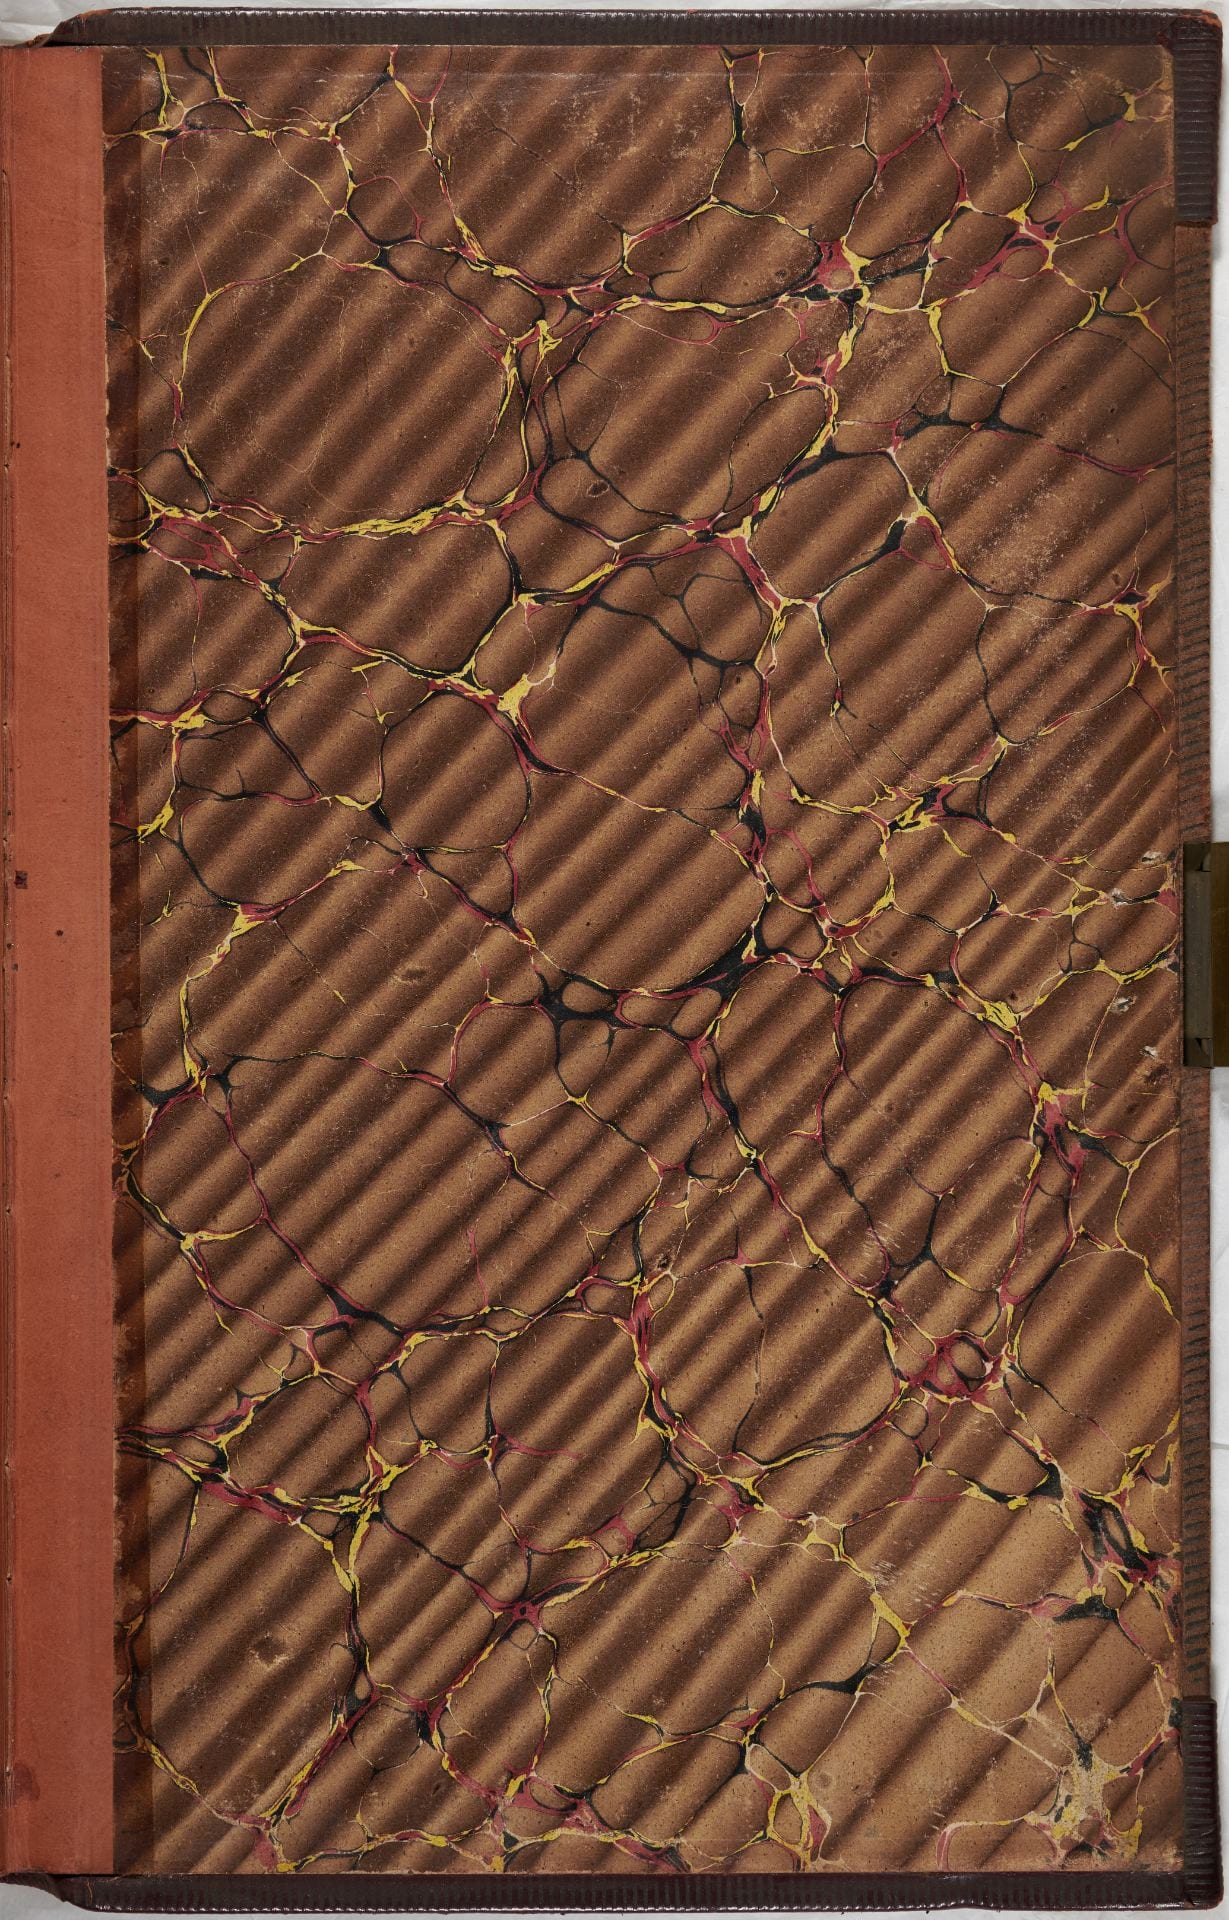 Financial ledger back endpaper marbled brown paper.